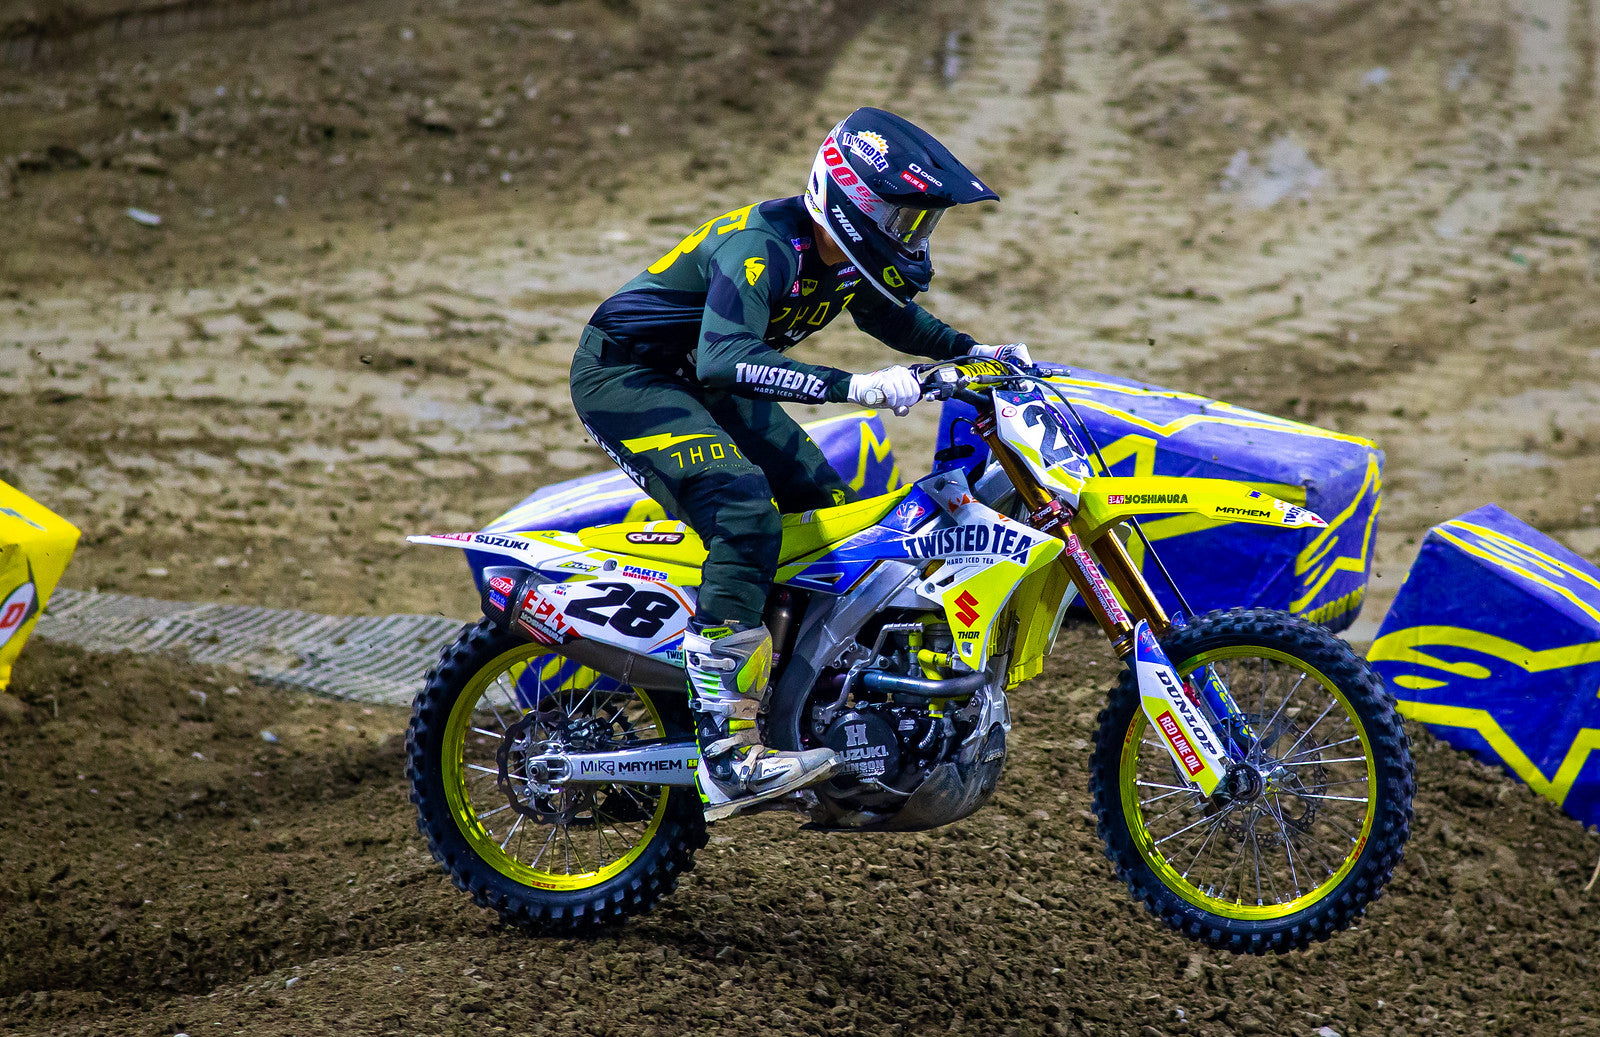 Brandon Hartranft (#28) charges the whoops on his RM-z 450 Suzuki.